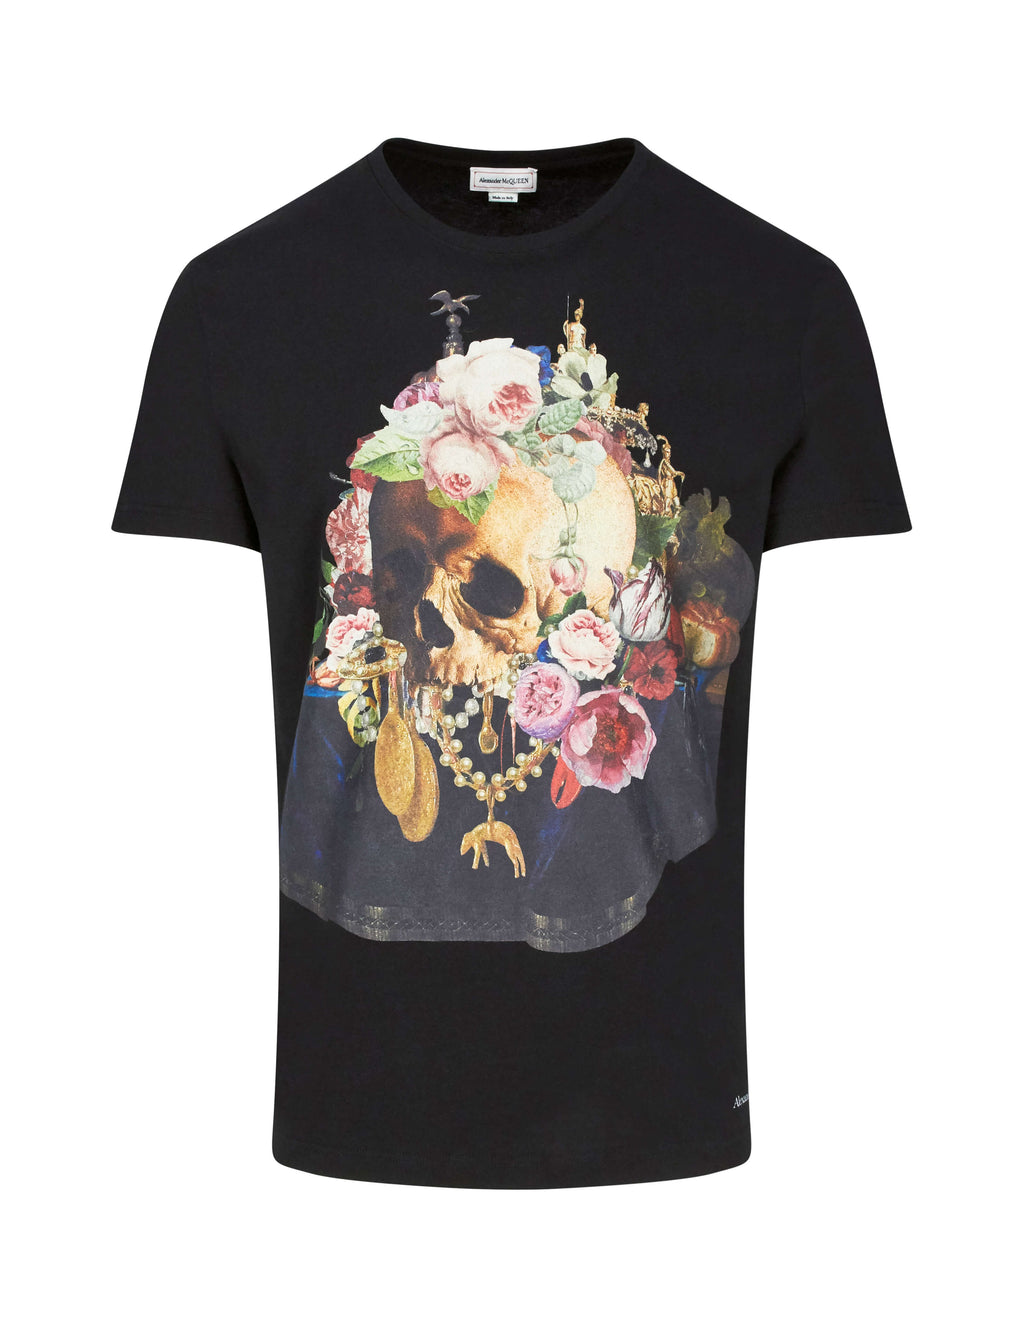 Alexander McQueen Men's Giulio Fashion Black Still Life Skull T-Shirt 573592QNZ640901